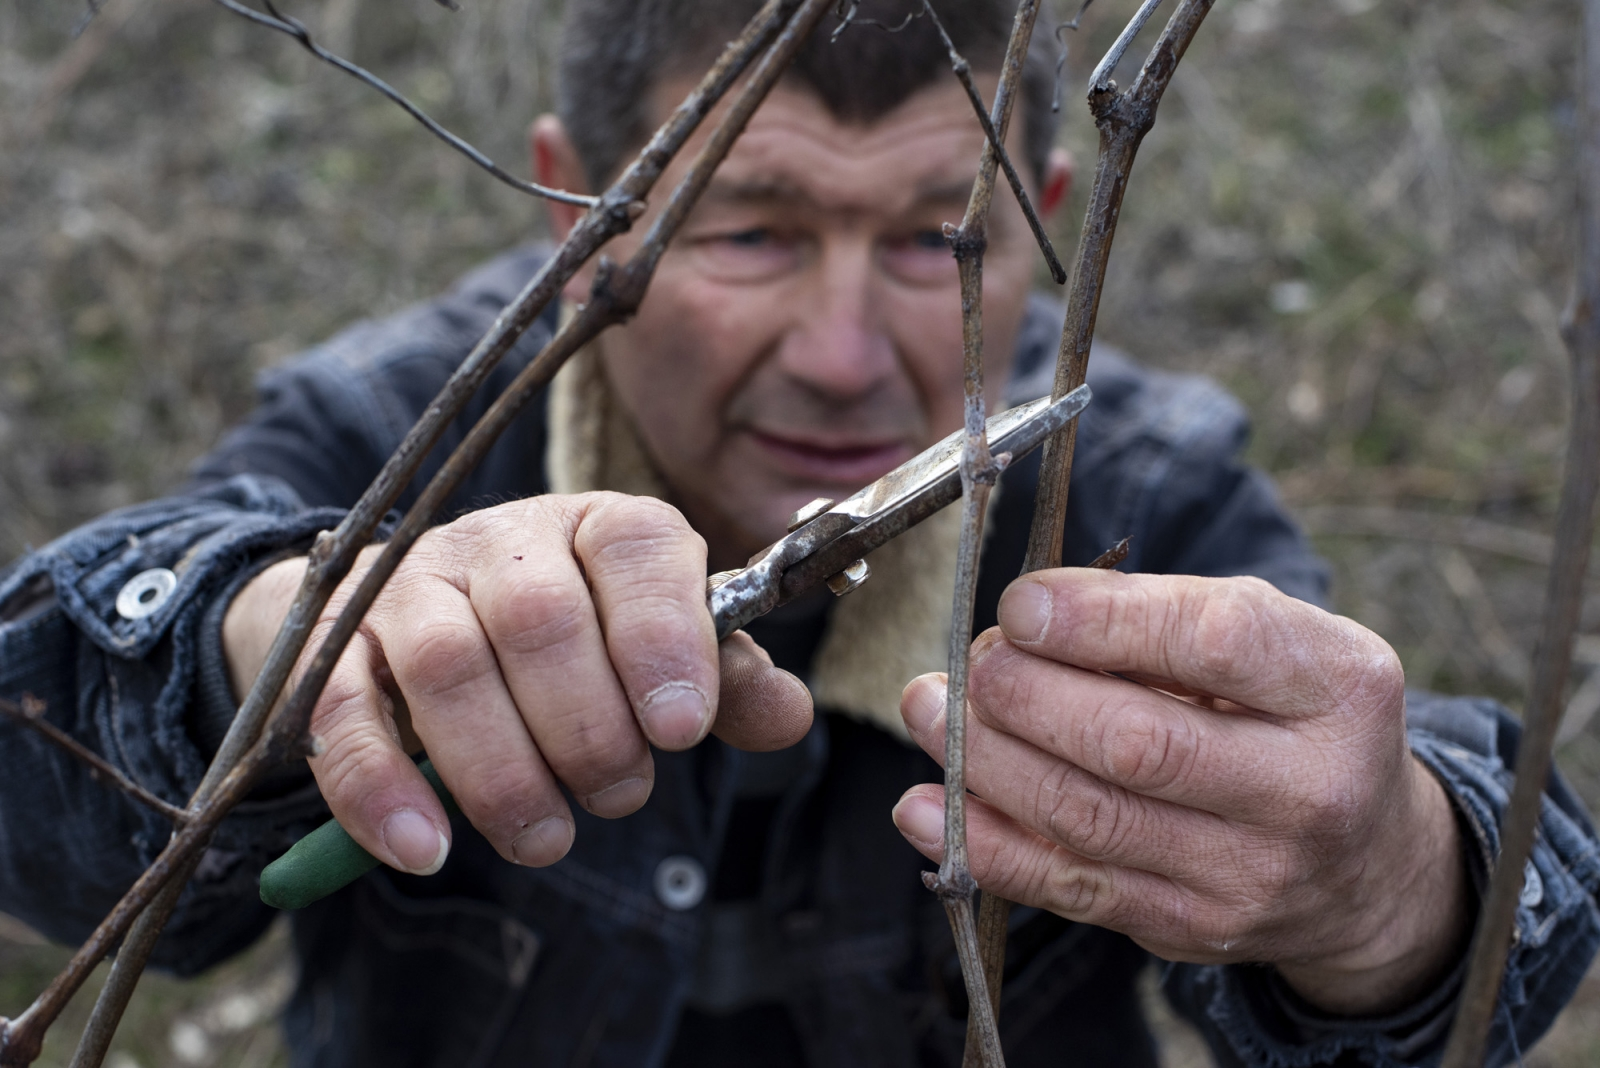 Velko does not drink, but enjoys the tradition of making wine and rakia, a grappa like liquor. On Saint Tryphon's Day, February 14, he pours a bottle of last year's wine into the soil to bring luck to the harvest before pruning the vines.